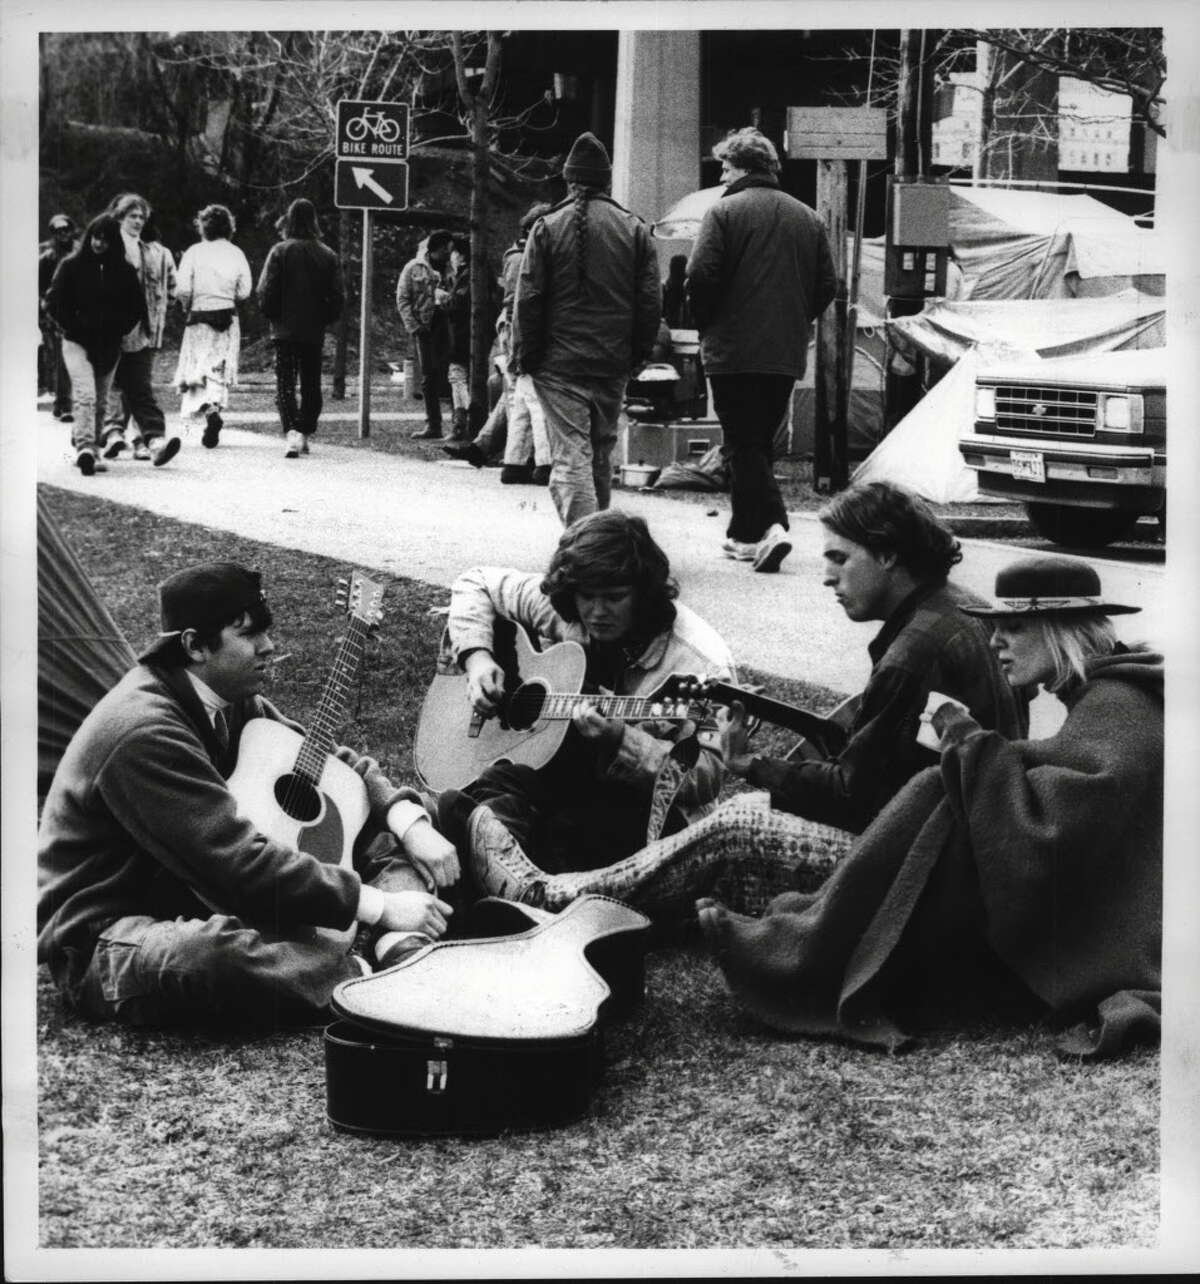 March 24, 1990: Deadheads from around the country gather for an impromptu jam session at the Corning Preserve while waiting for that night's Grateful Dead concert. Left to right: Rob Striker, Westchester, New York; Brendan Walsch, Montreal; Scott Mysers, Orlando, Florida; Dana Peterson, Dallas, Texas.